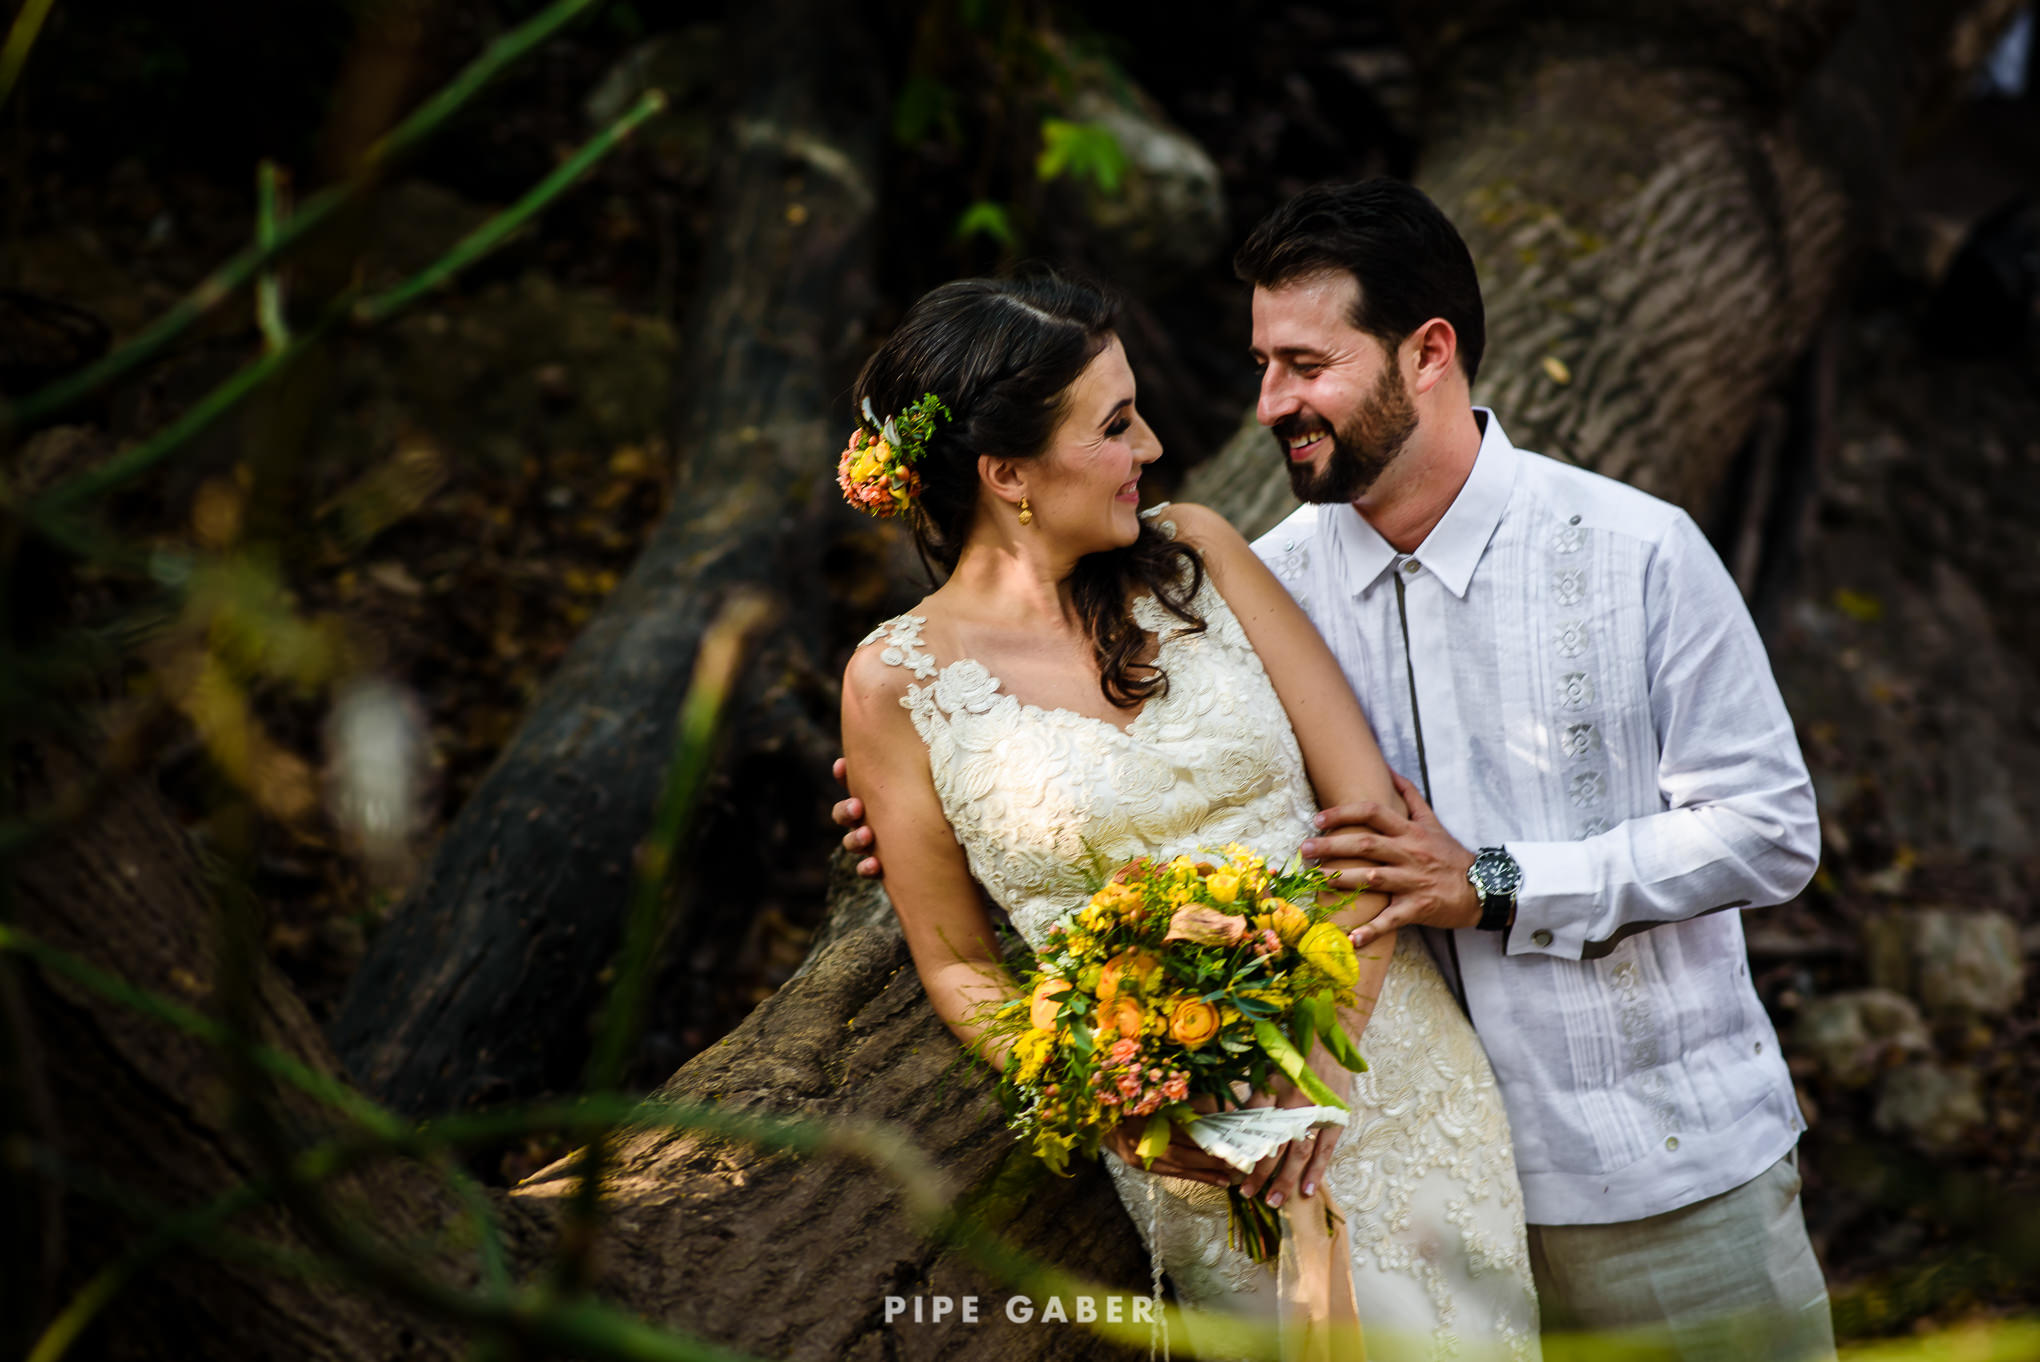 PERMISOS_ESPECIALES_CASARSE_YUCATAN_WEDDINGS_BY_PIPE_GABER02_WEB.jpg